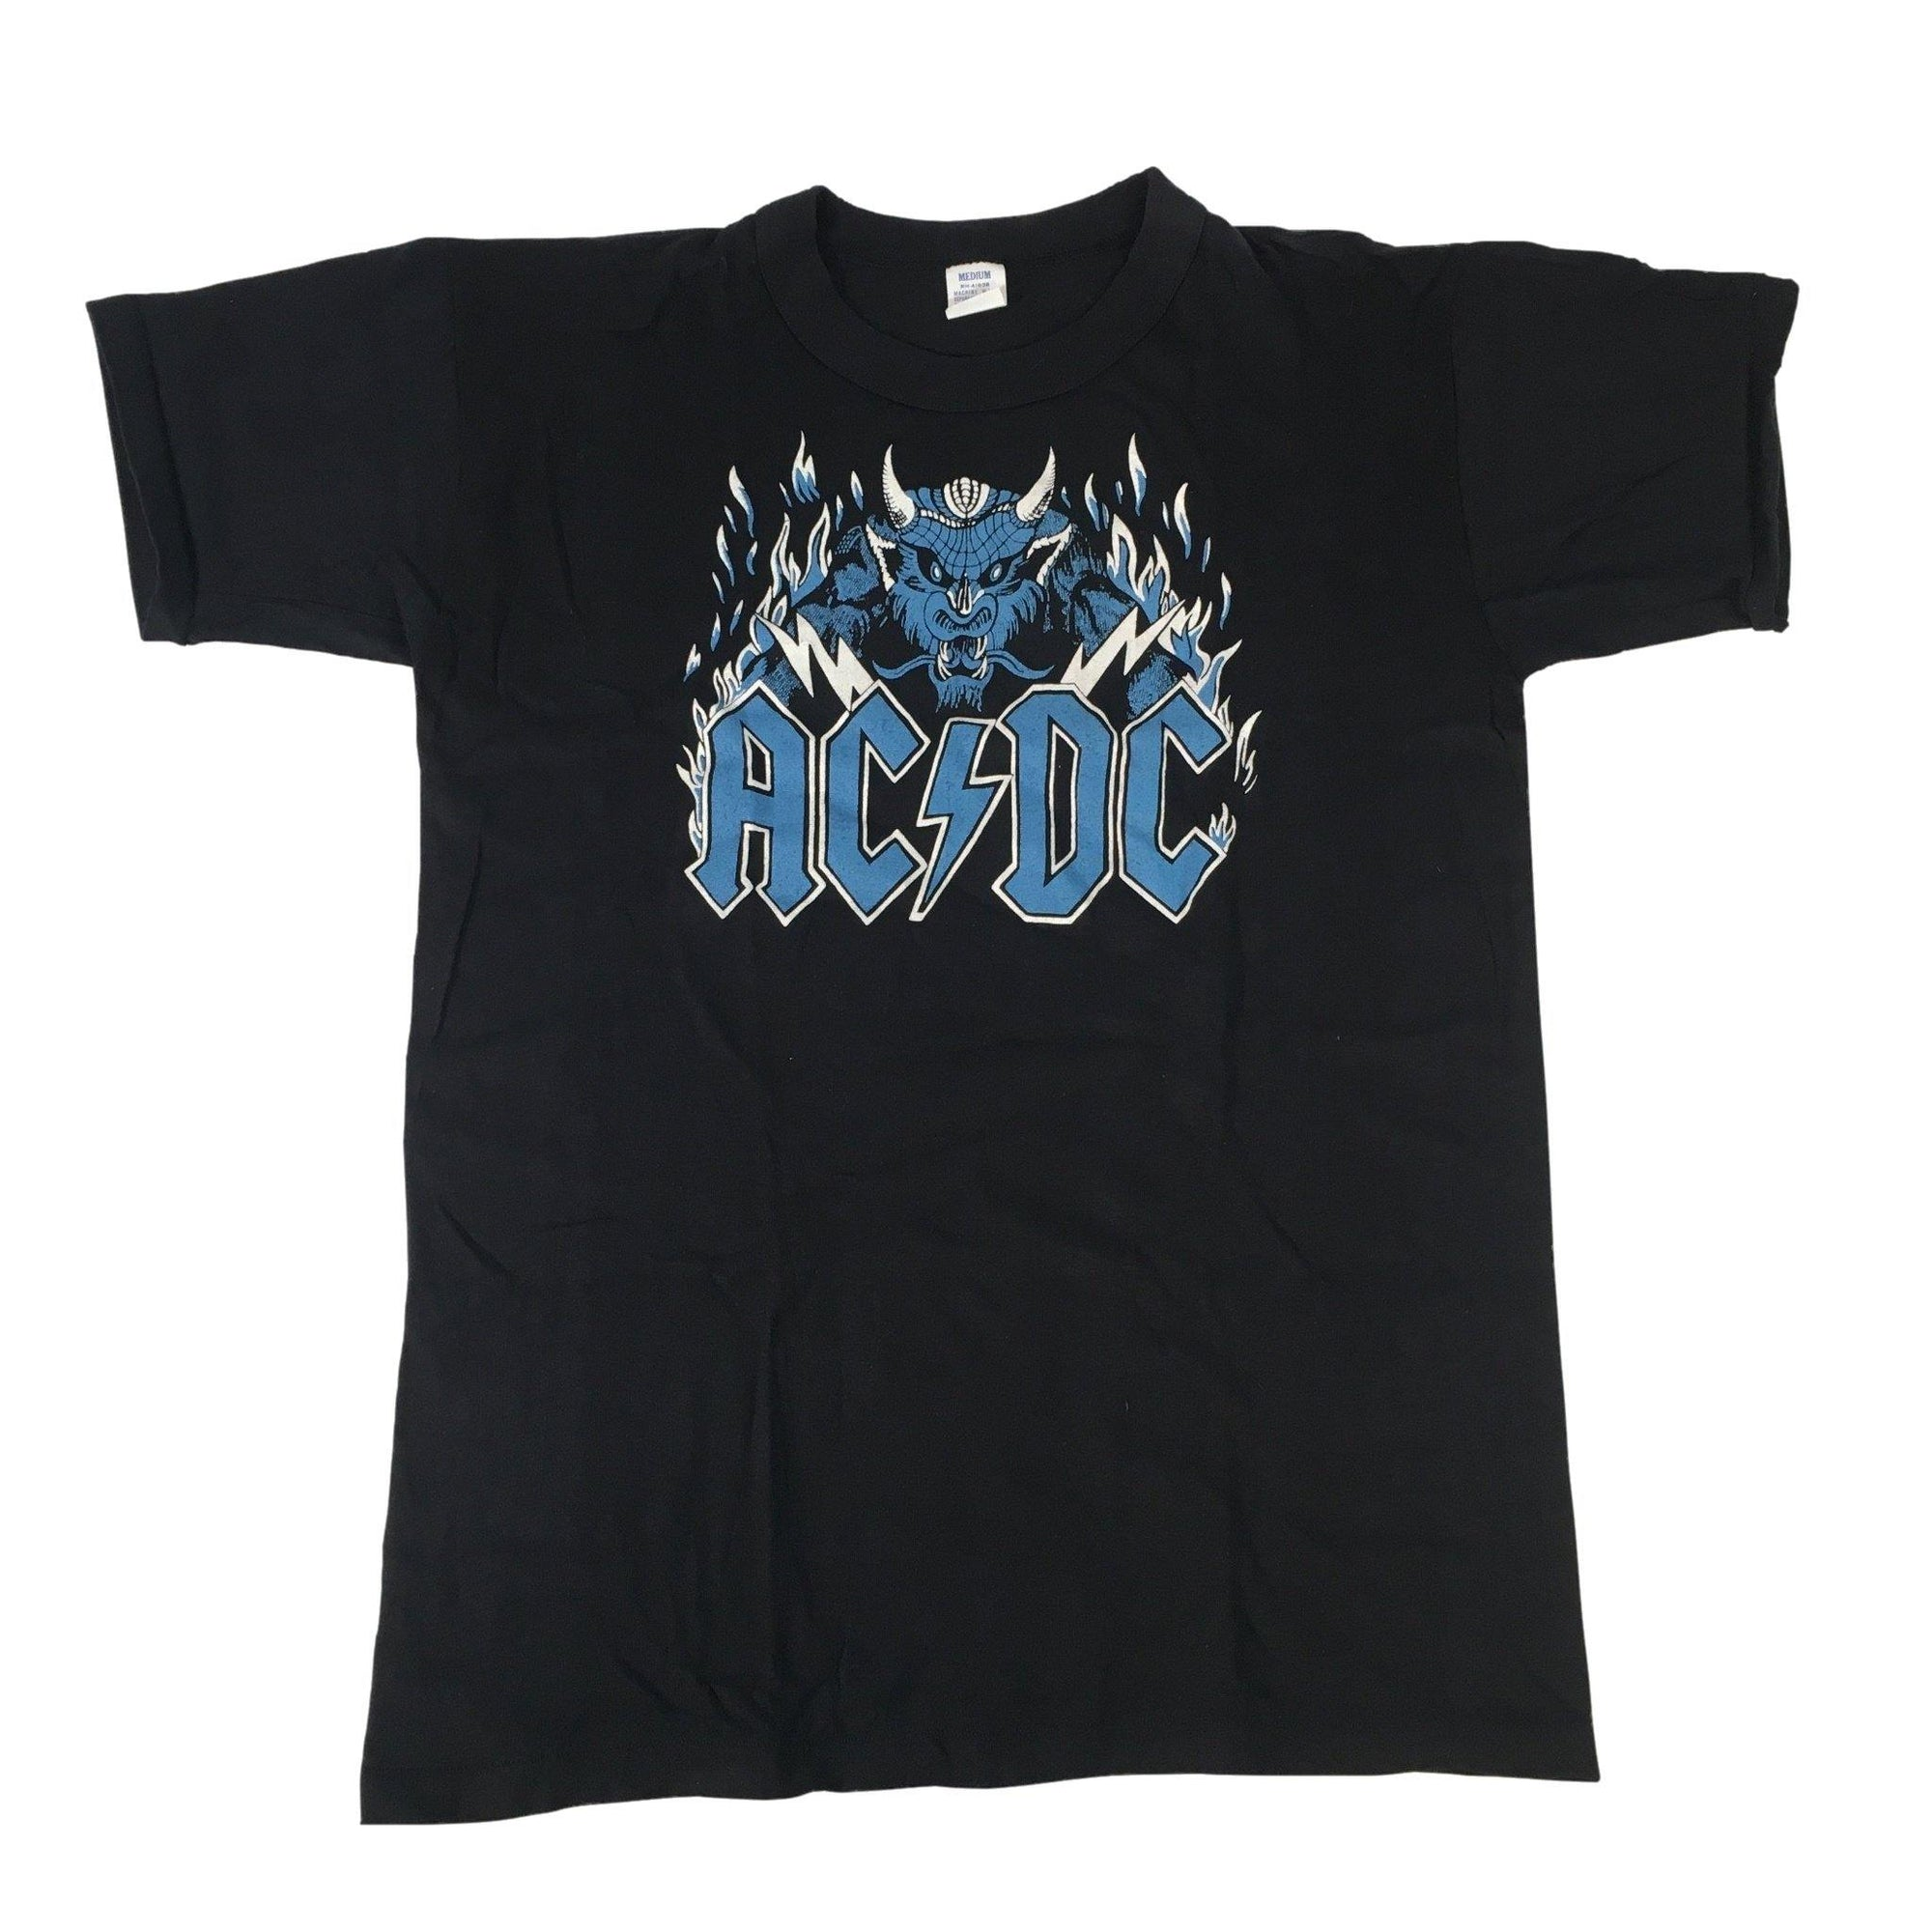 Vintage Original AC/DC Dragon T Shirt